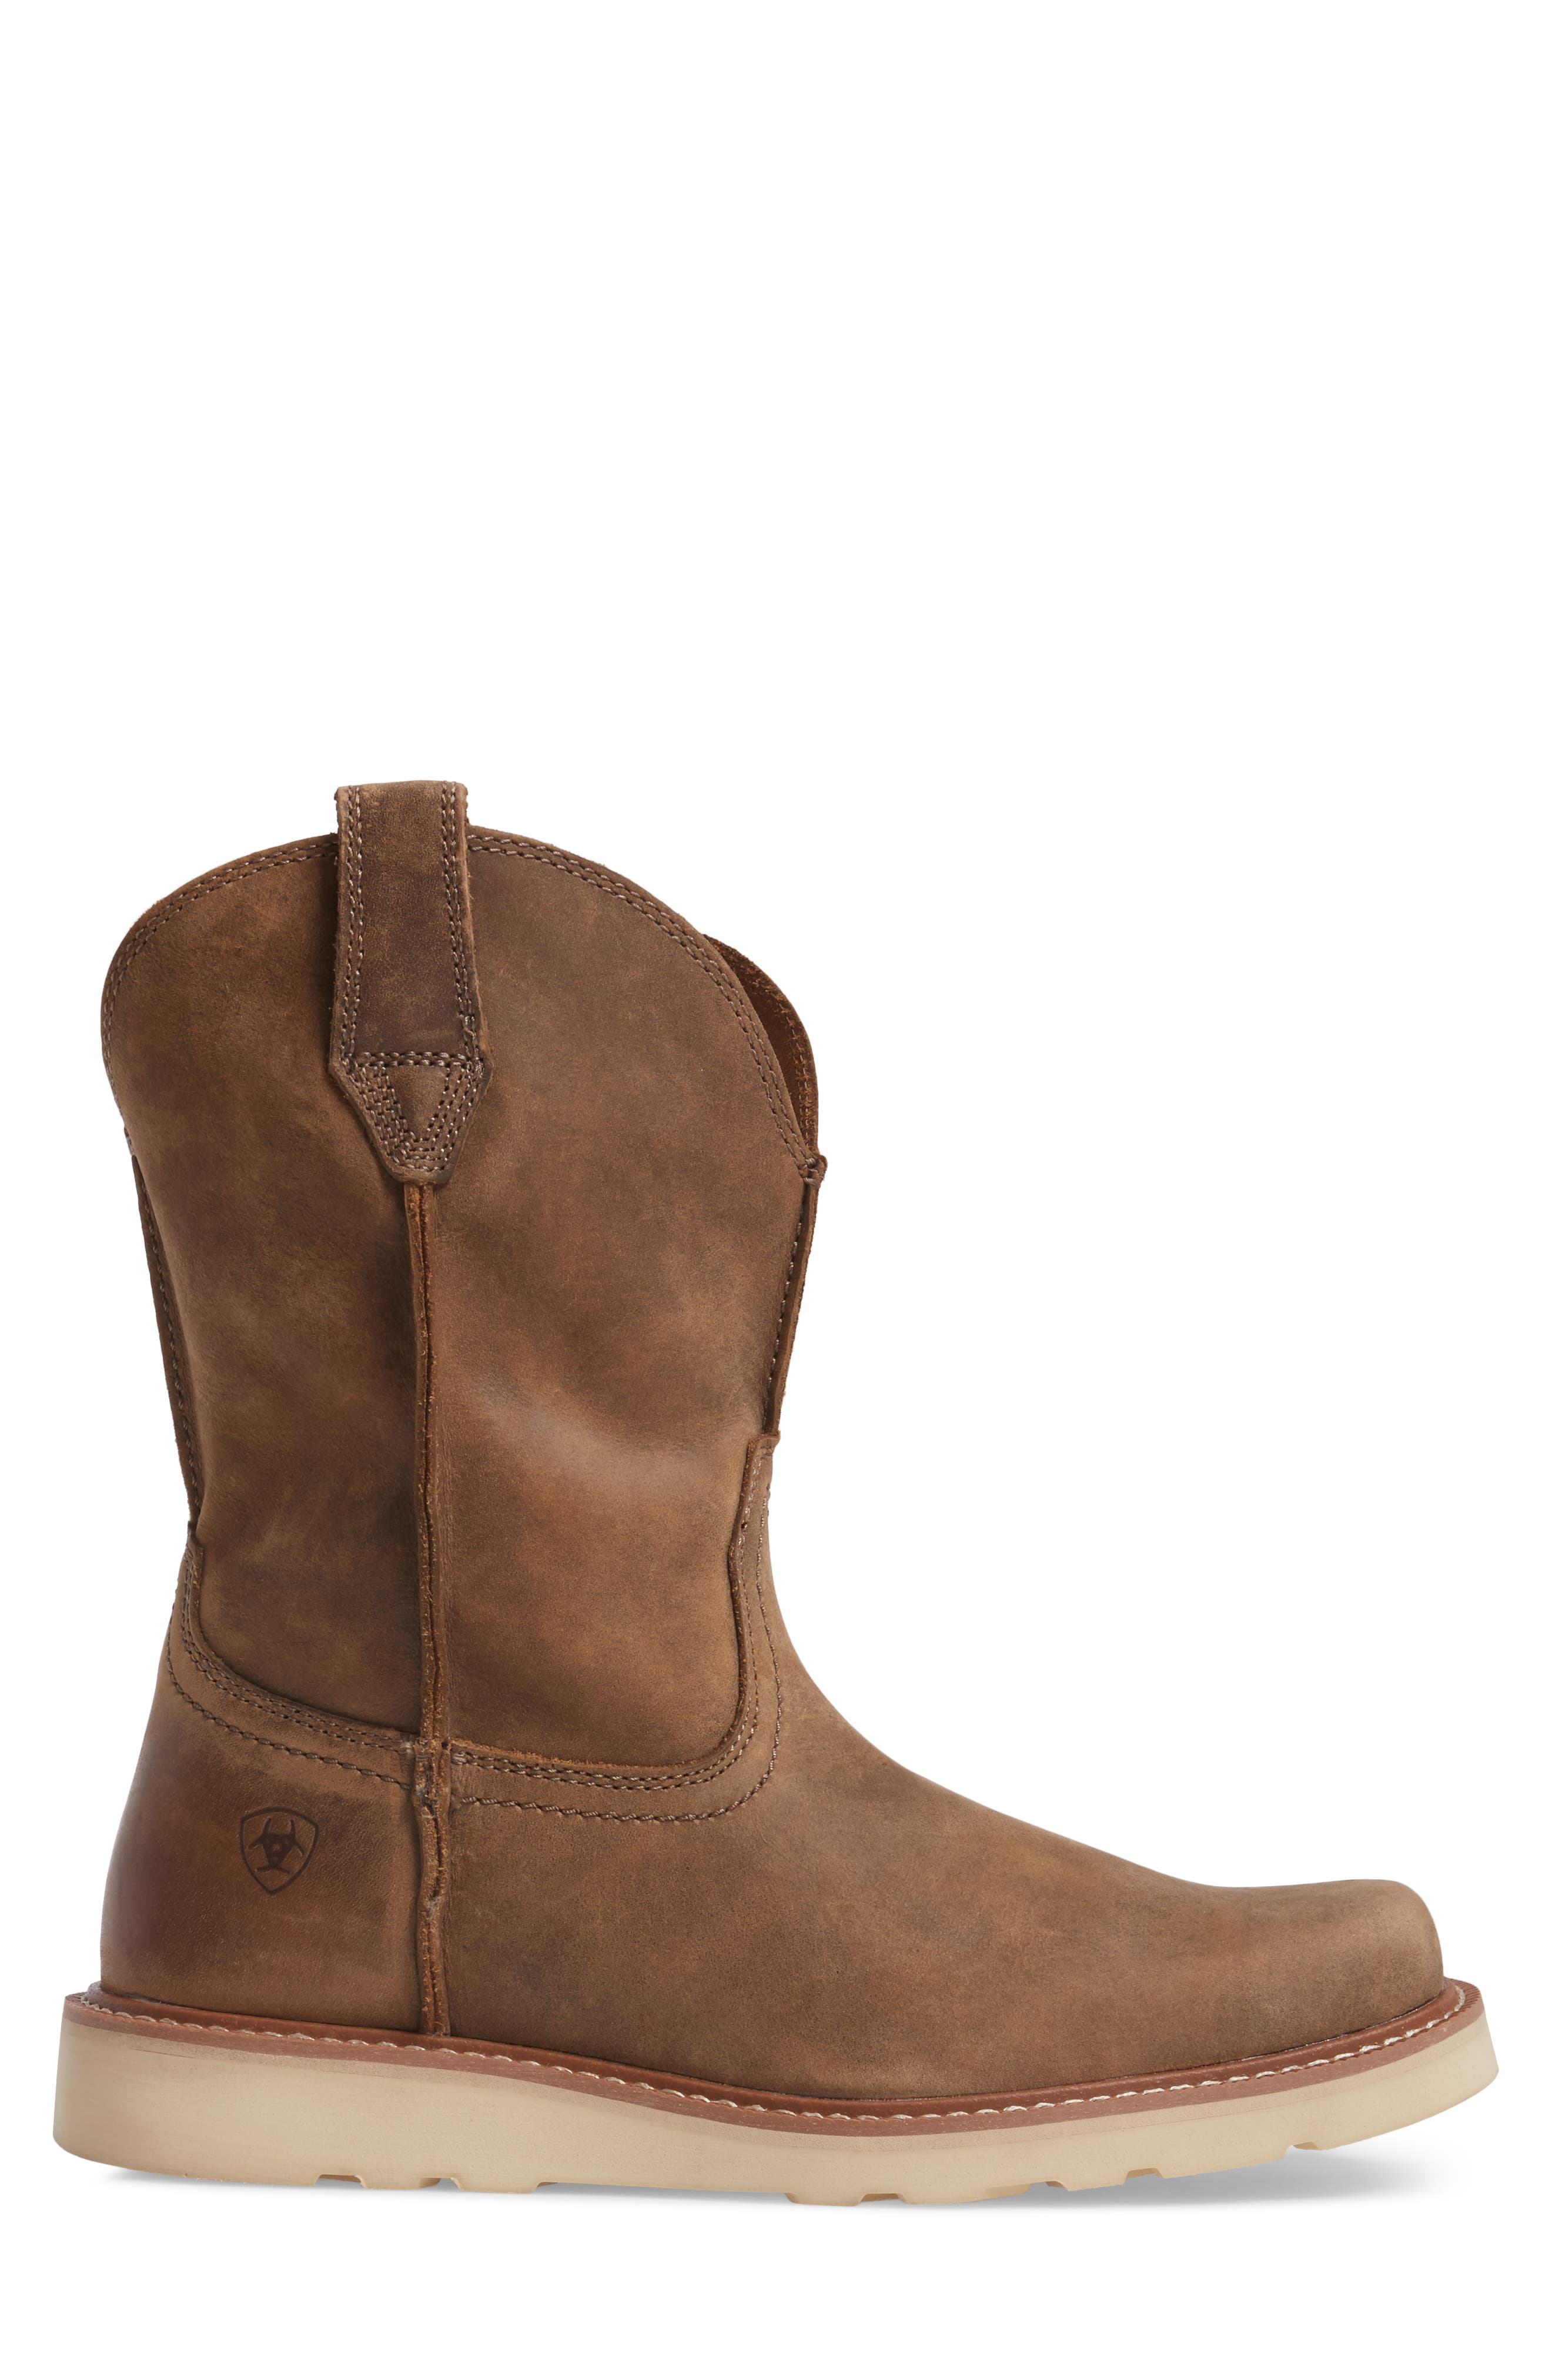 ARIAT, Rambler Tall Boot, Alternate thumbnail 3, color, BROWN BOMBER LEATHER